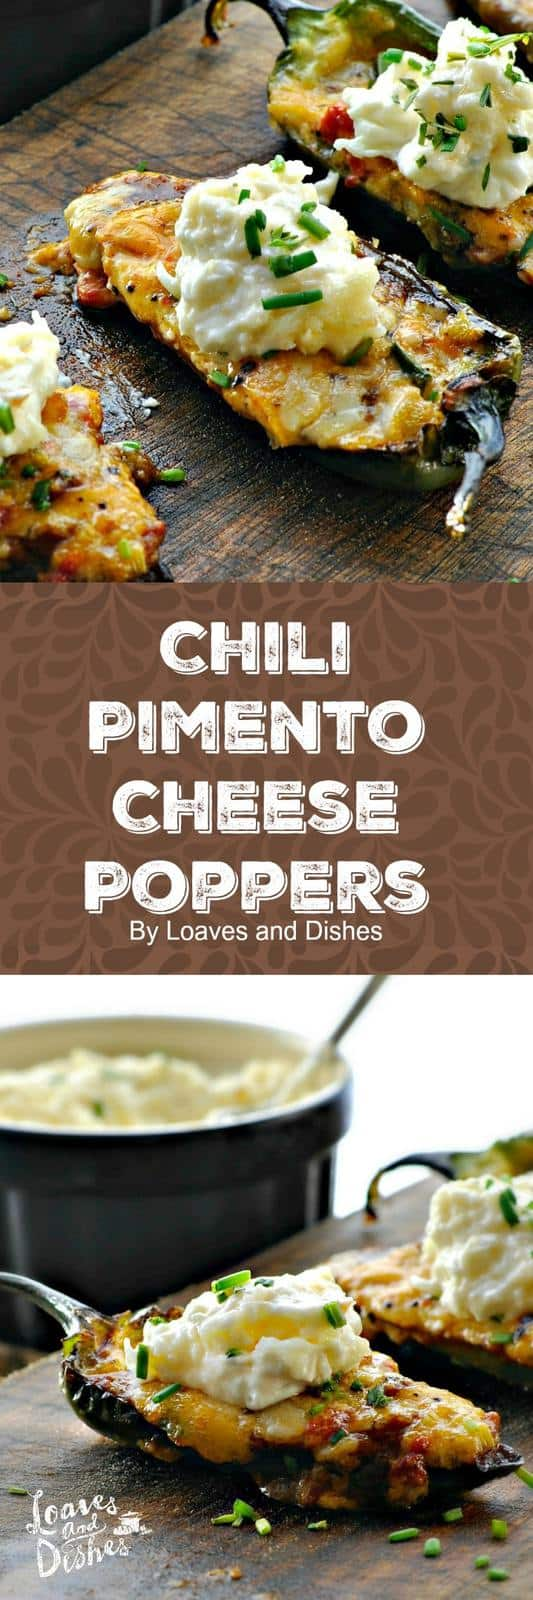 Do you need a FABULOUS Game Day Recipe that comes together in 10 minutes and then bakes for 15 - then DONE? Sure you do! Try these SUPER Game Day Chili Pimento Cheese Poppers! Easy. #ad. COUPON on post!